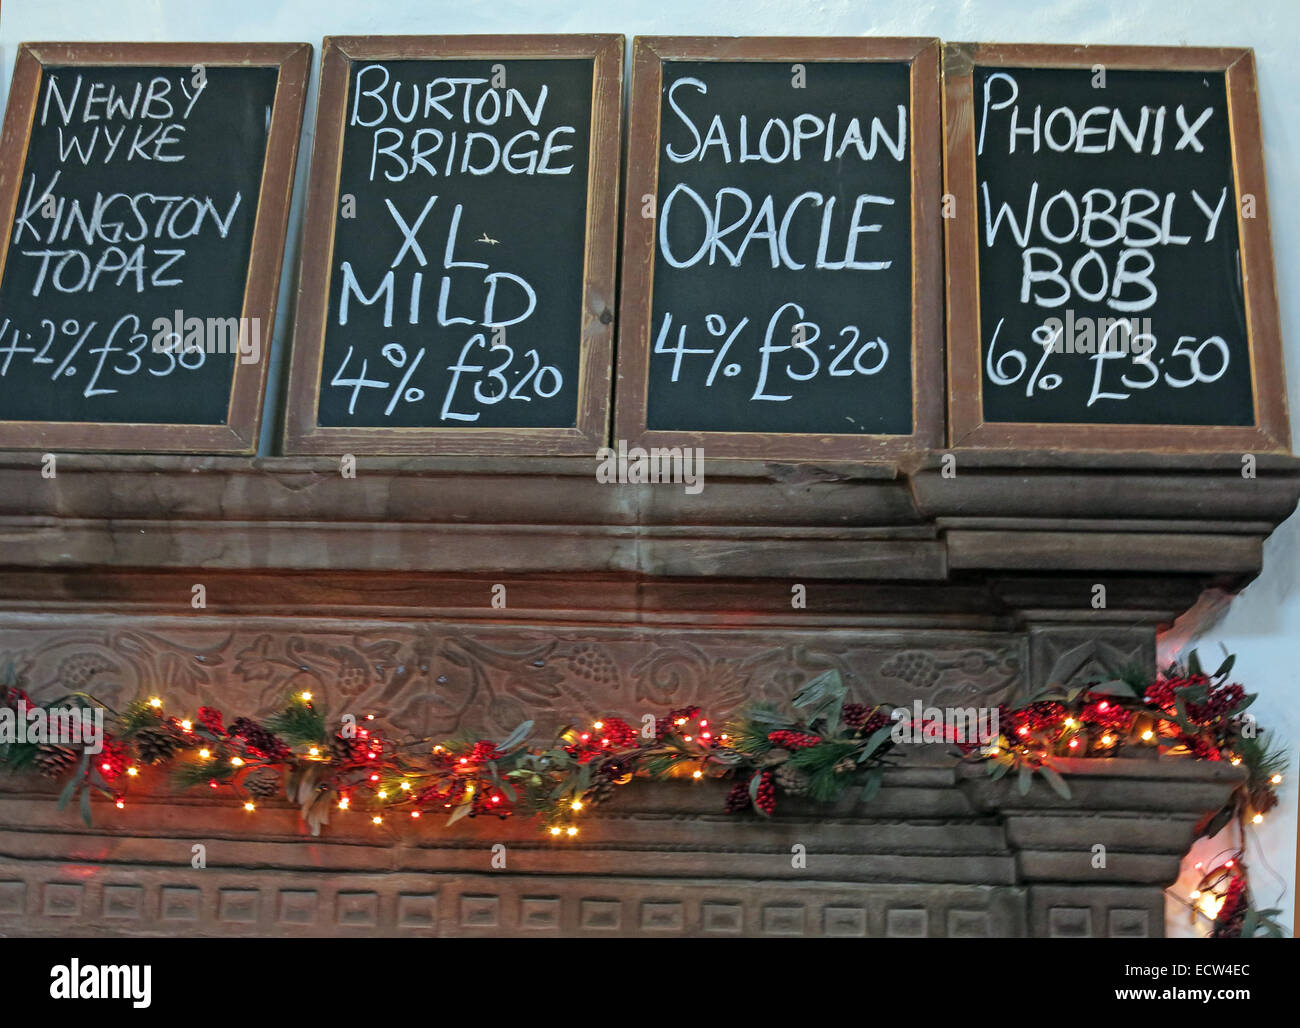 The Brewery Tap,list of beers,Chester,Lower Bridge St,Cheshire,England,UK - Stock Image